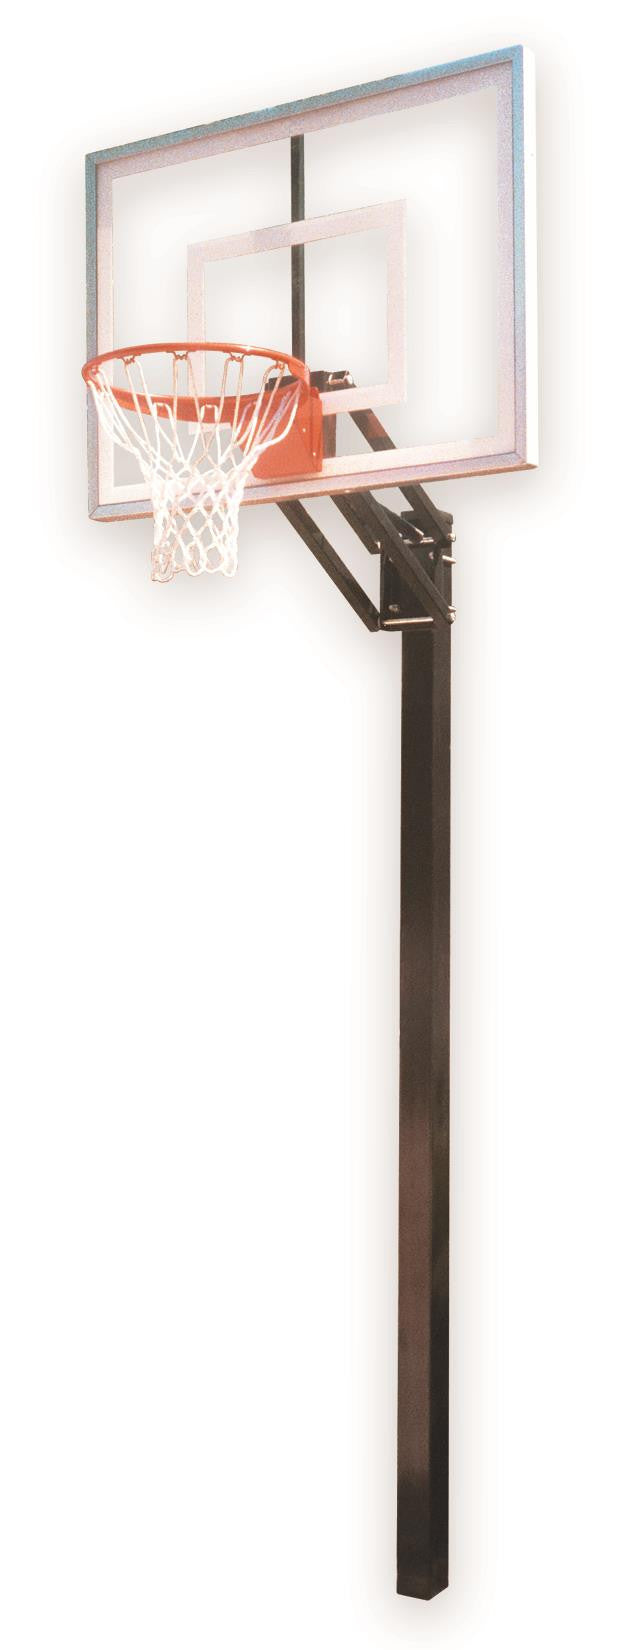 First Team Champ III In Ground Outdoor Adjustable Basketball Hoop 54 inch Acrylic